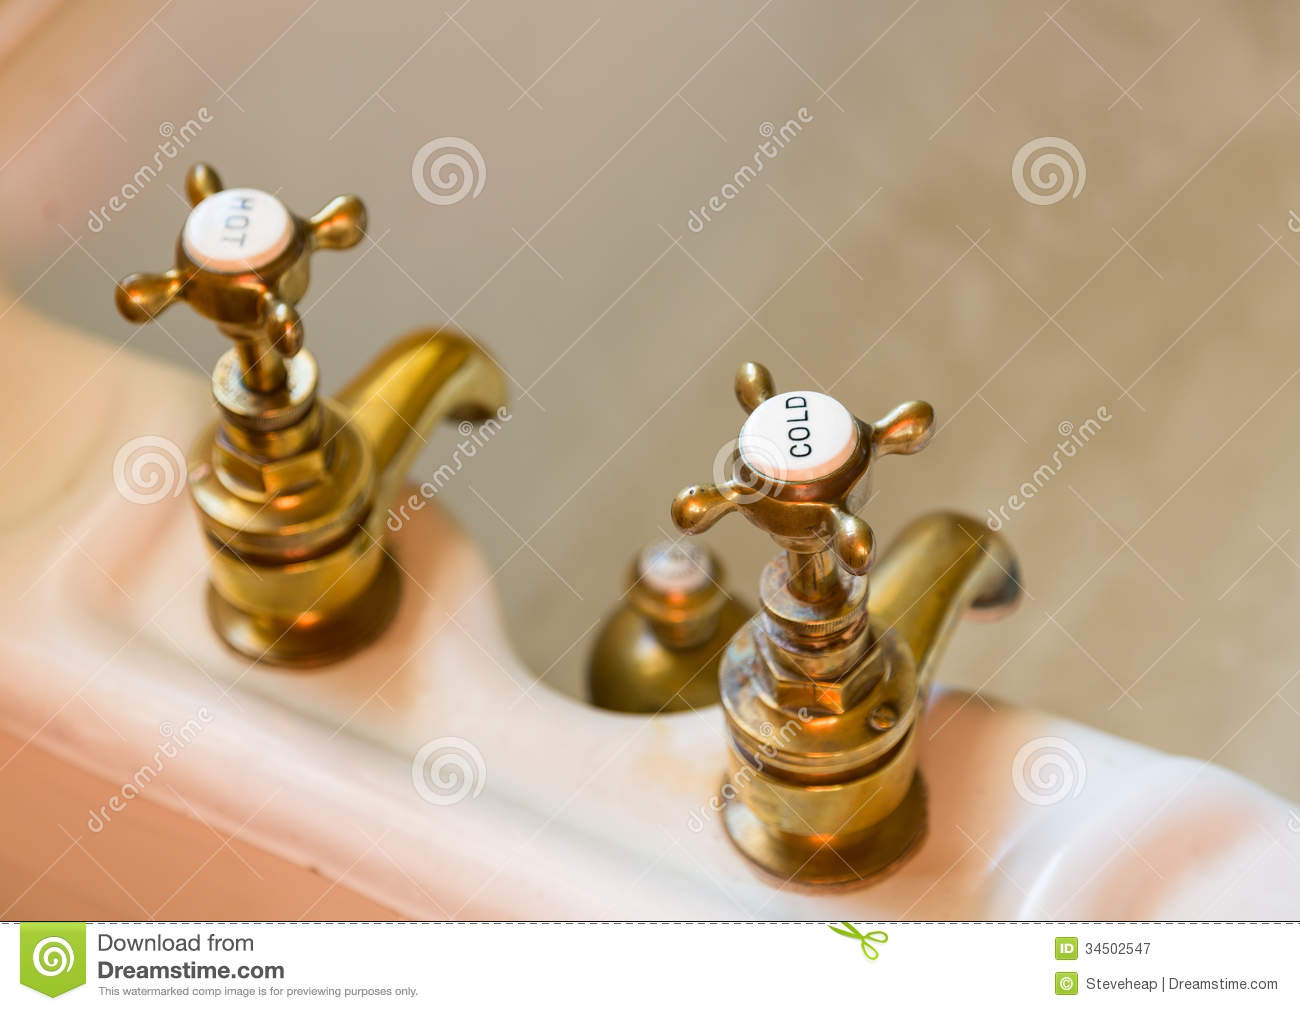 Antique Bath Taps Or Faucets Stock Image - Image of traditional ...